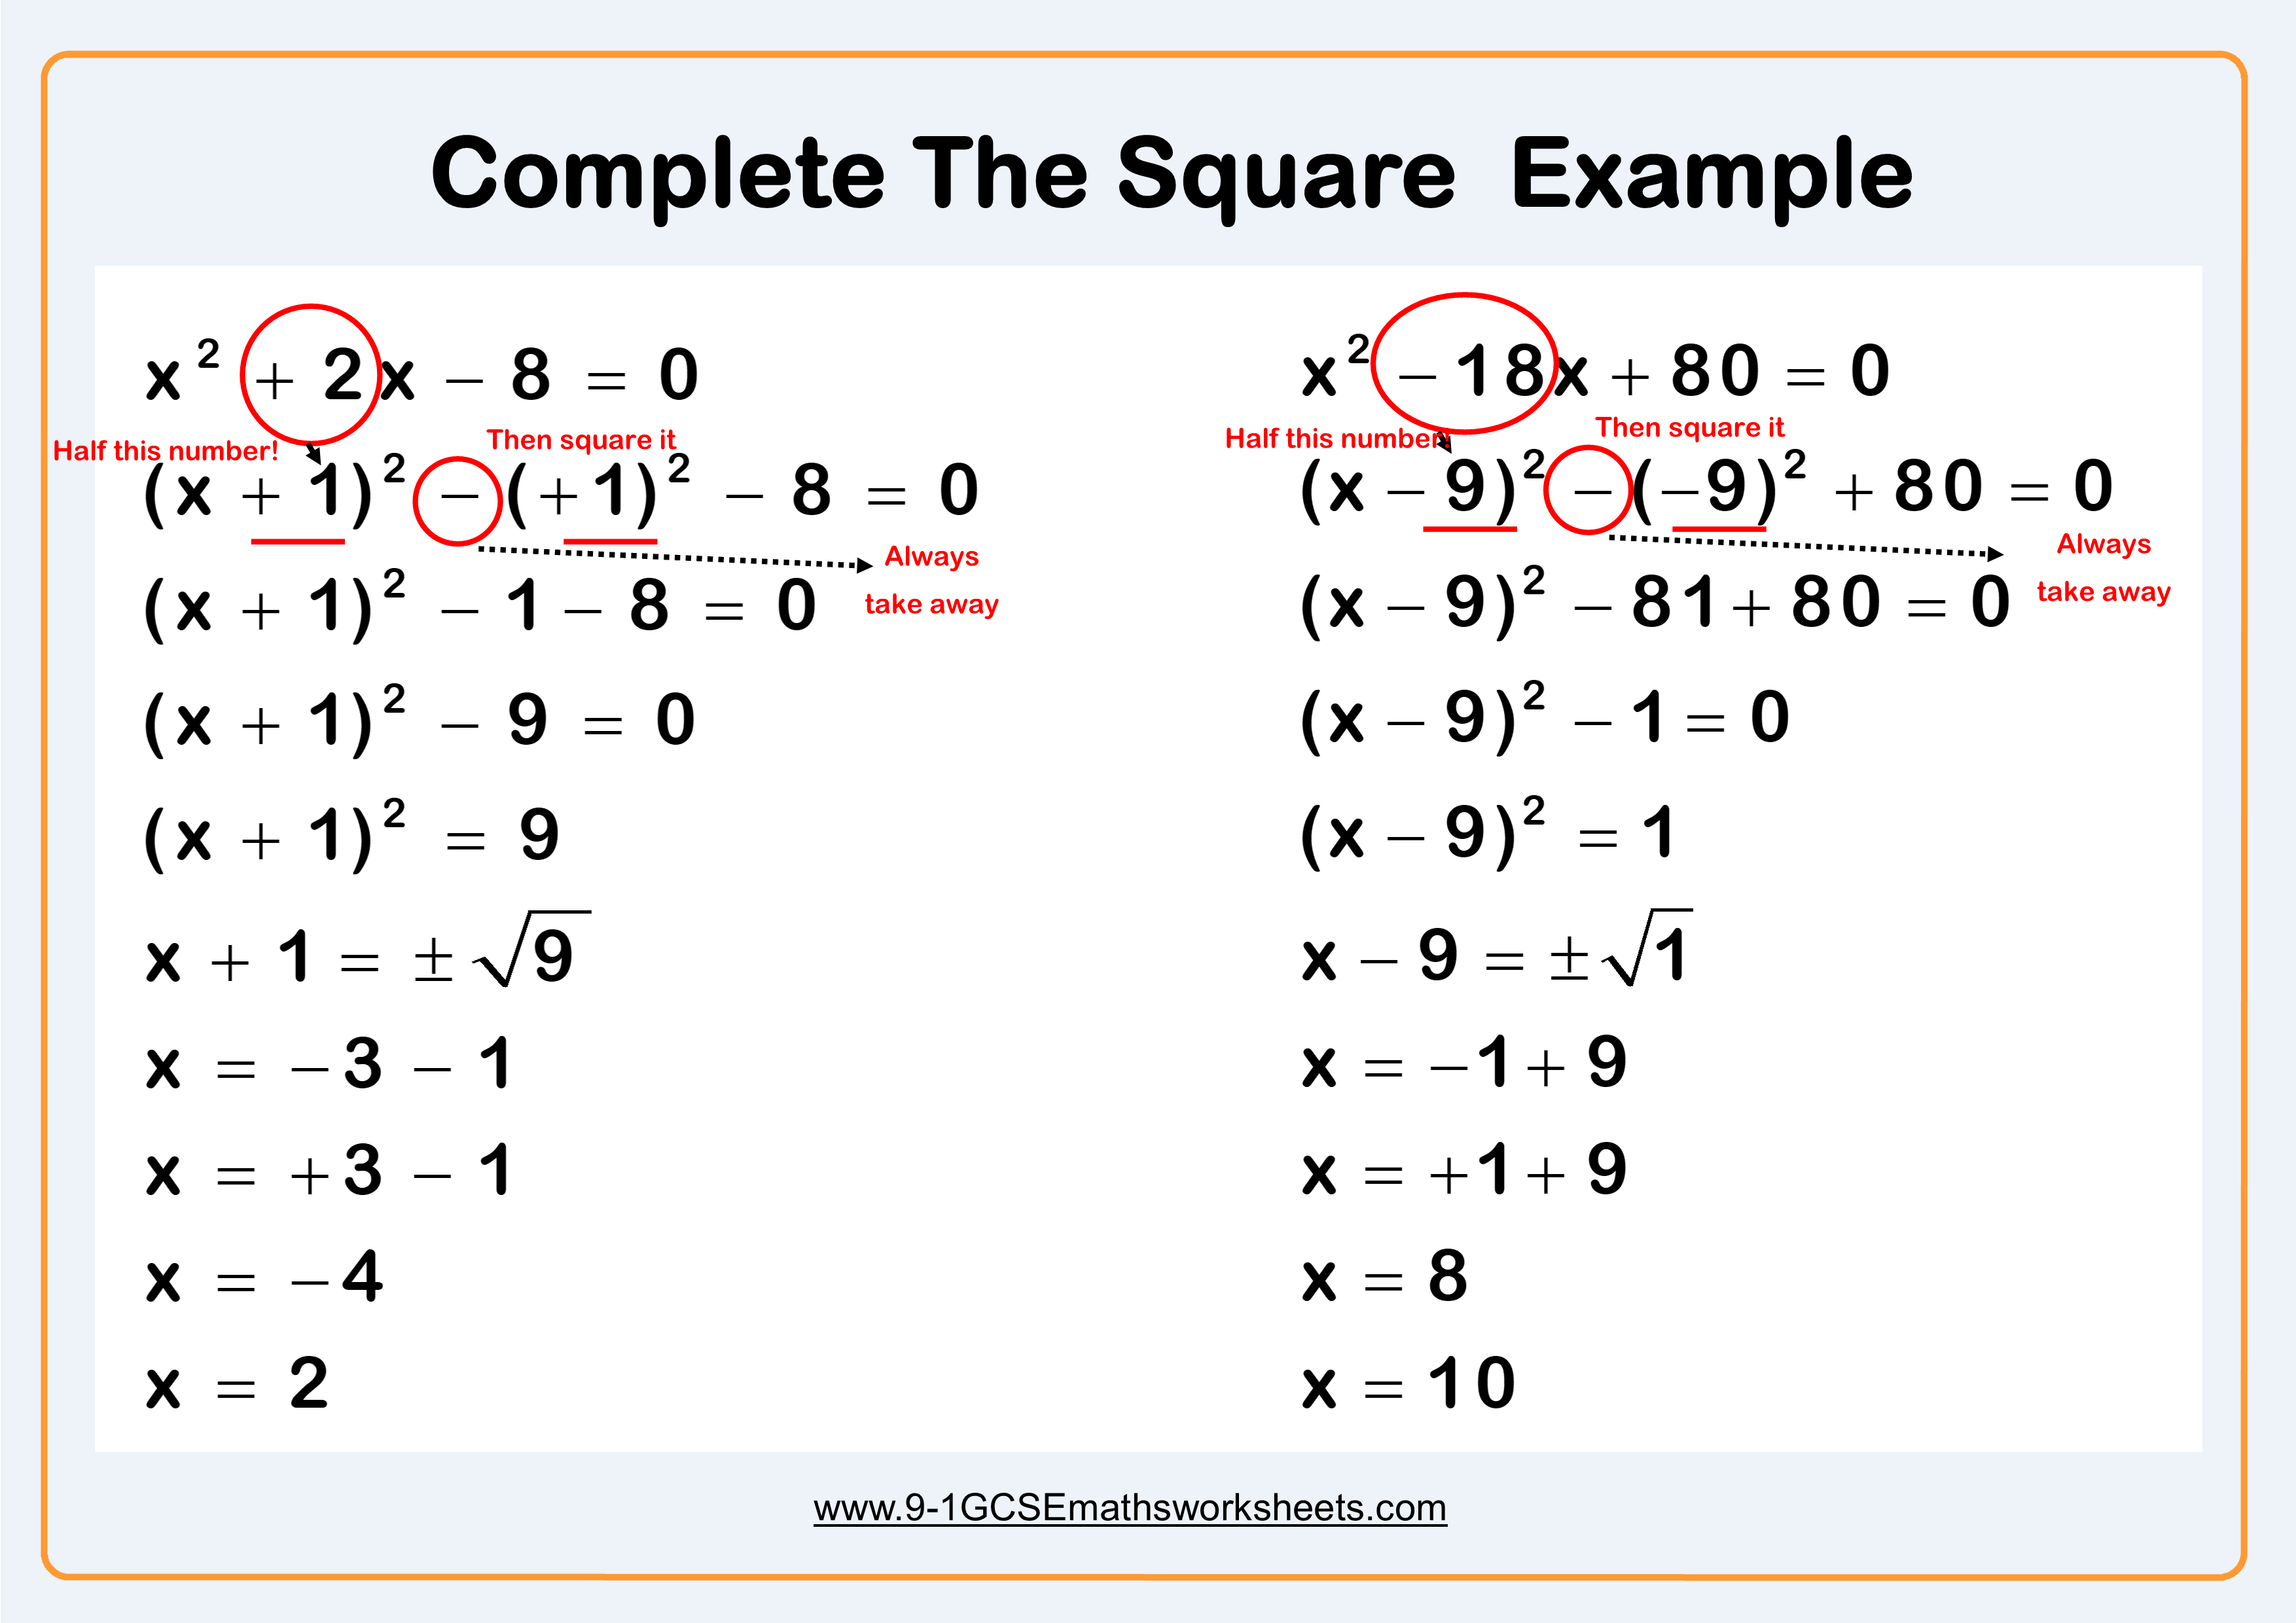 Completing the square example | Matematyka, Szkoła ...